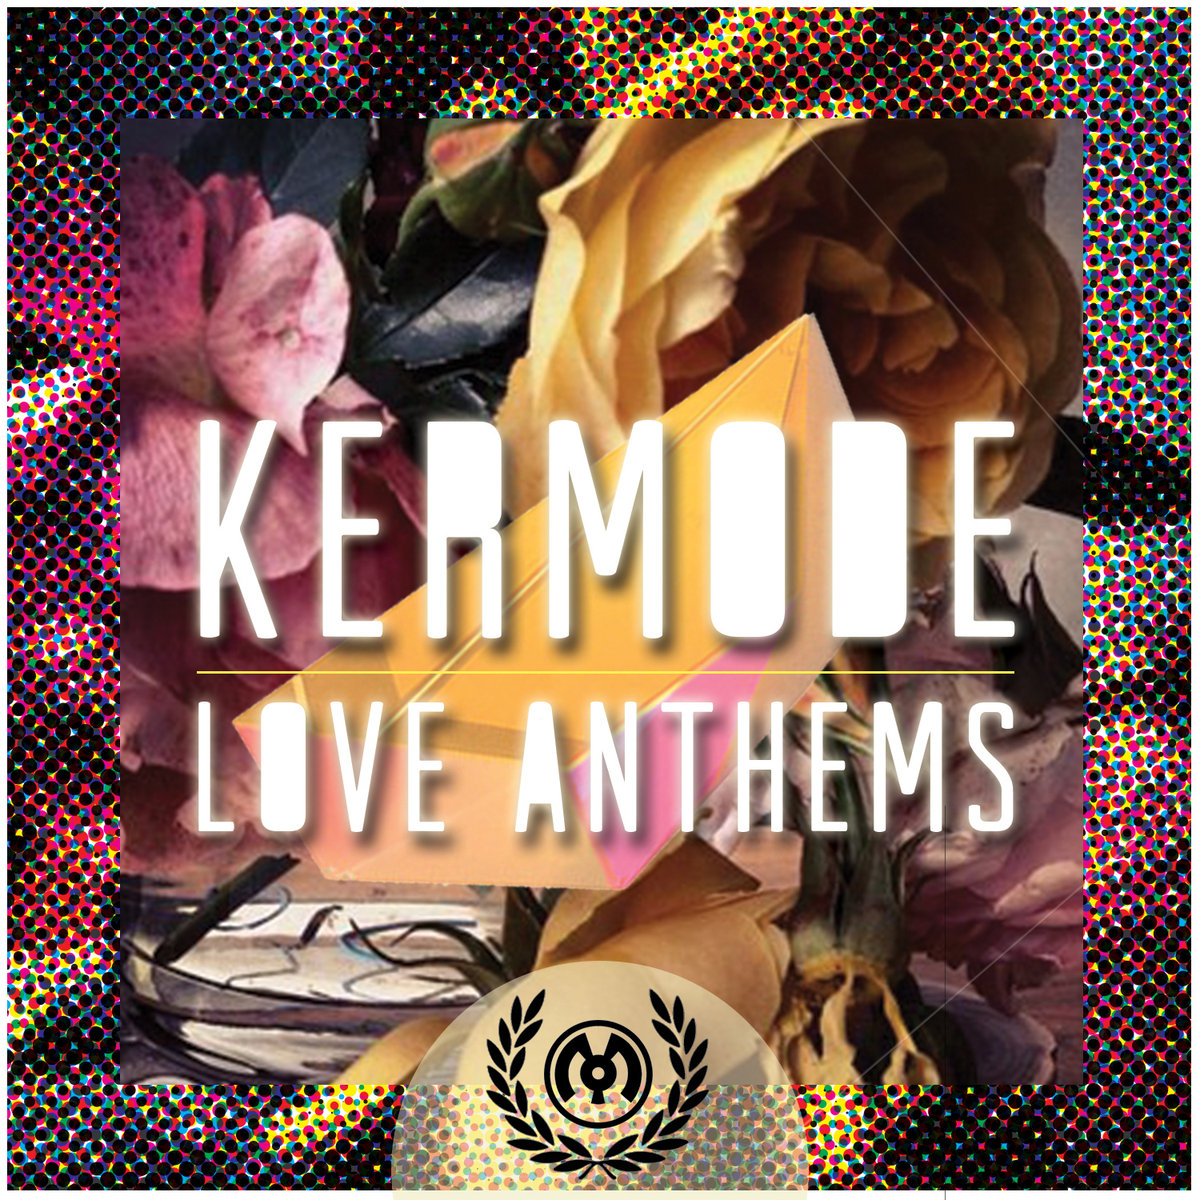 Kermode - Love Anthems (artwork)